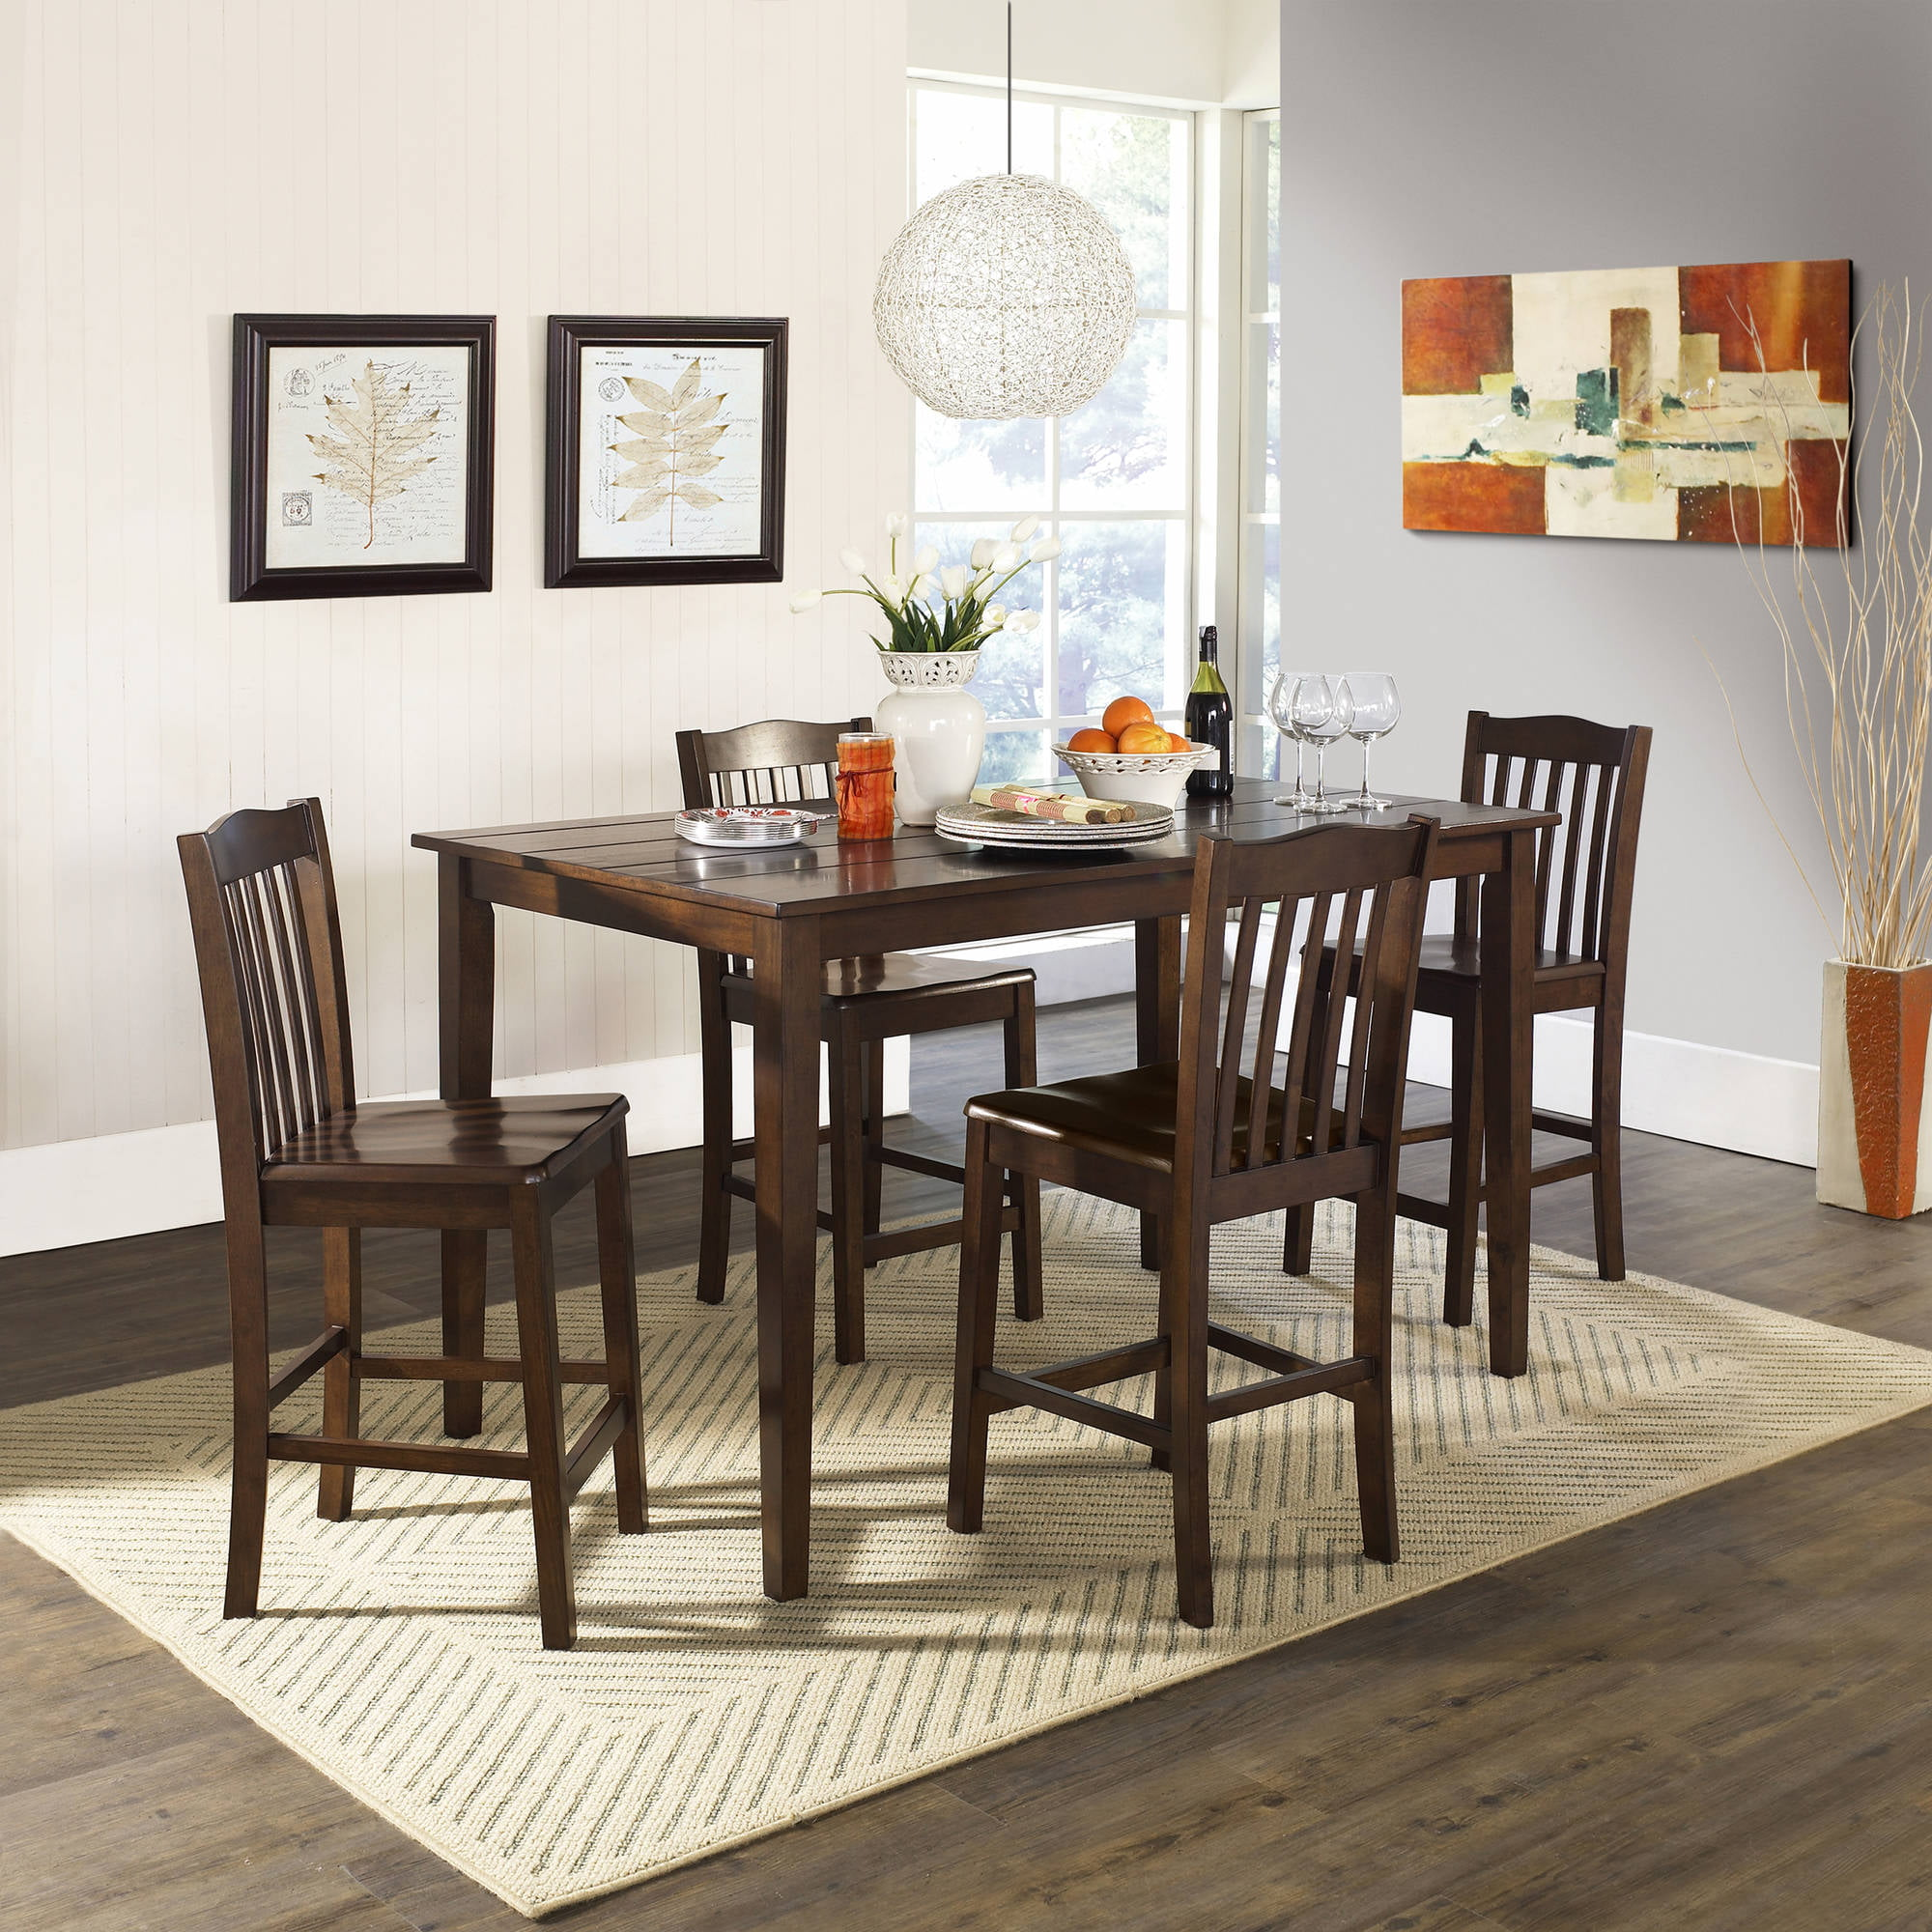 better homes and gardens 5piece counter height dining set dark rustic mahogany walmartcom - Rustic Dining Set